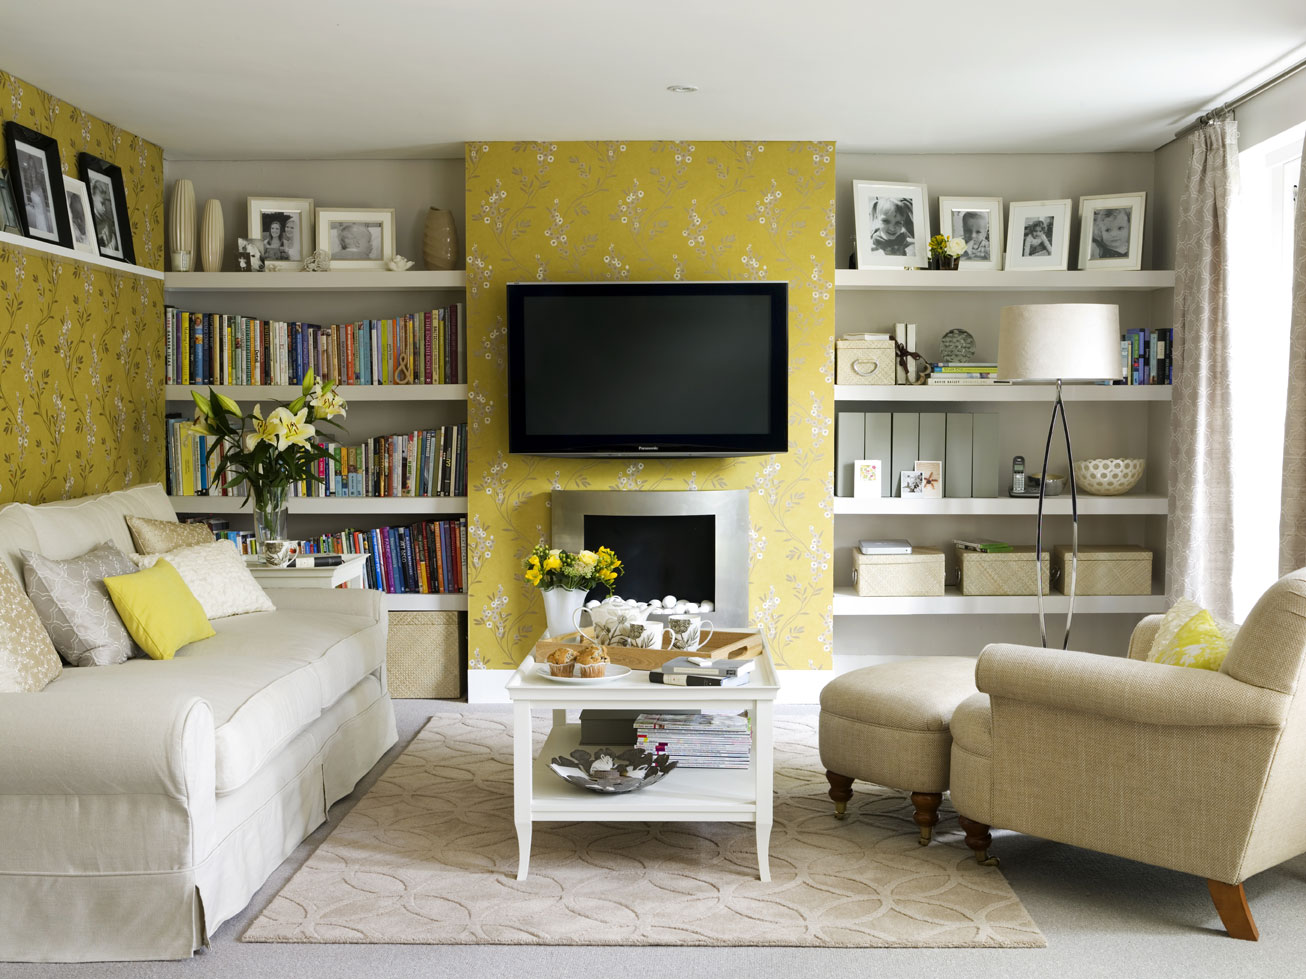 Living Room Images yellow room interior inspiration: 55+ rooms for your viewing pleasure